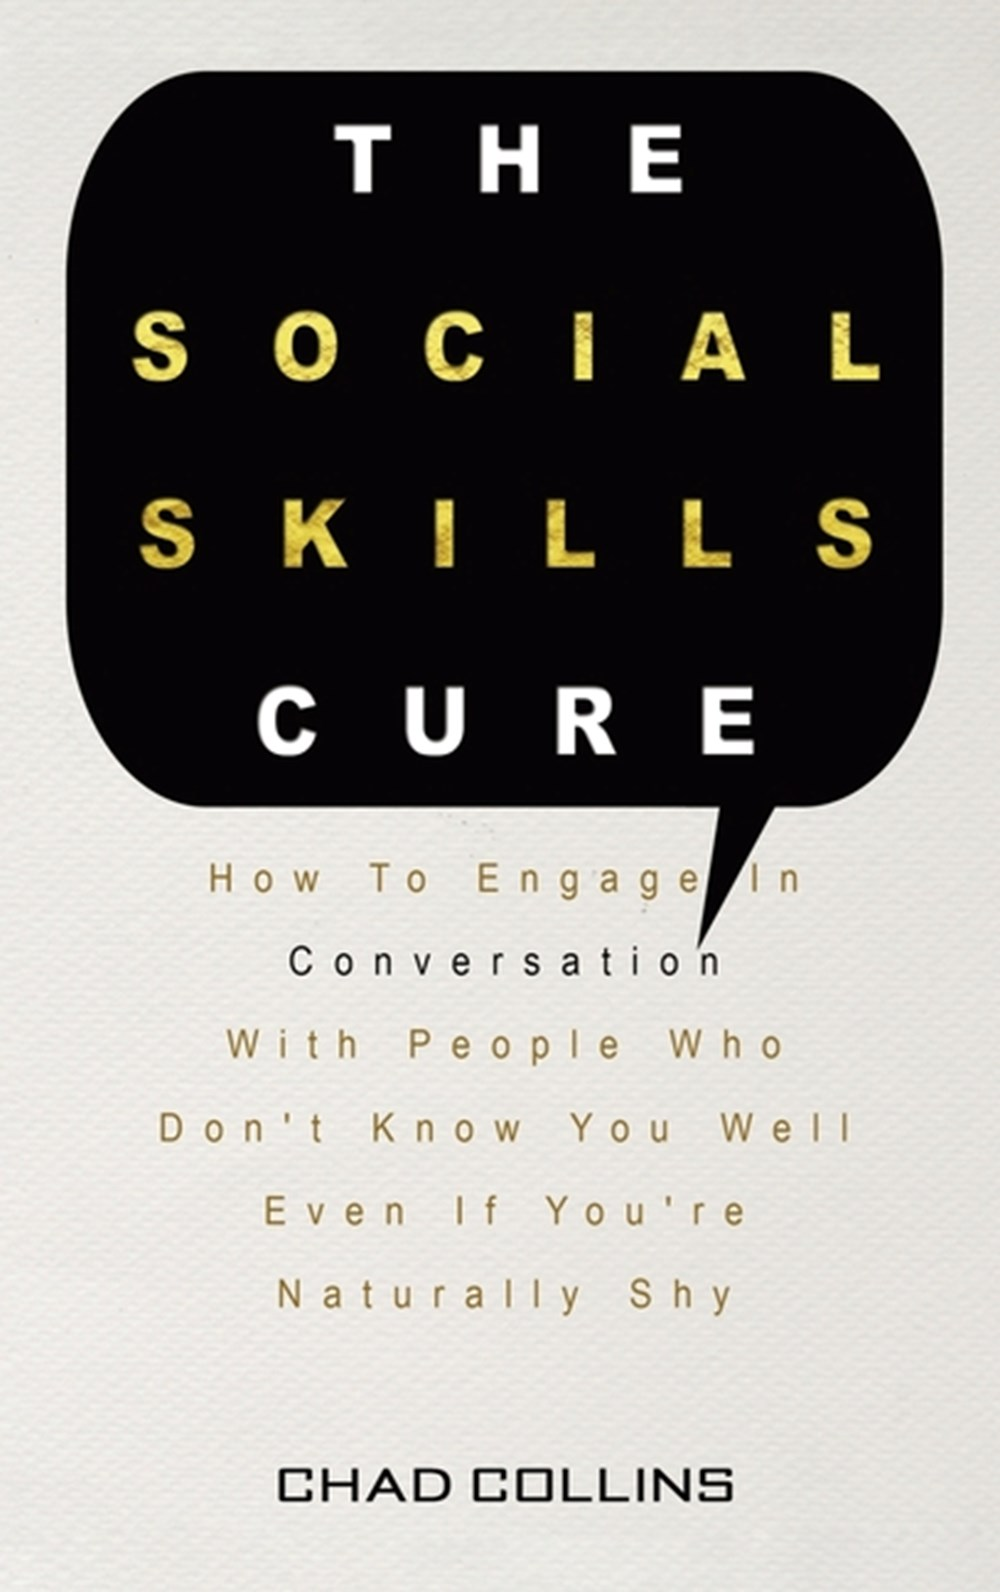 Social Skills Cure How To Engage In Conversation With People Who Don't Know You Well Even If You're